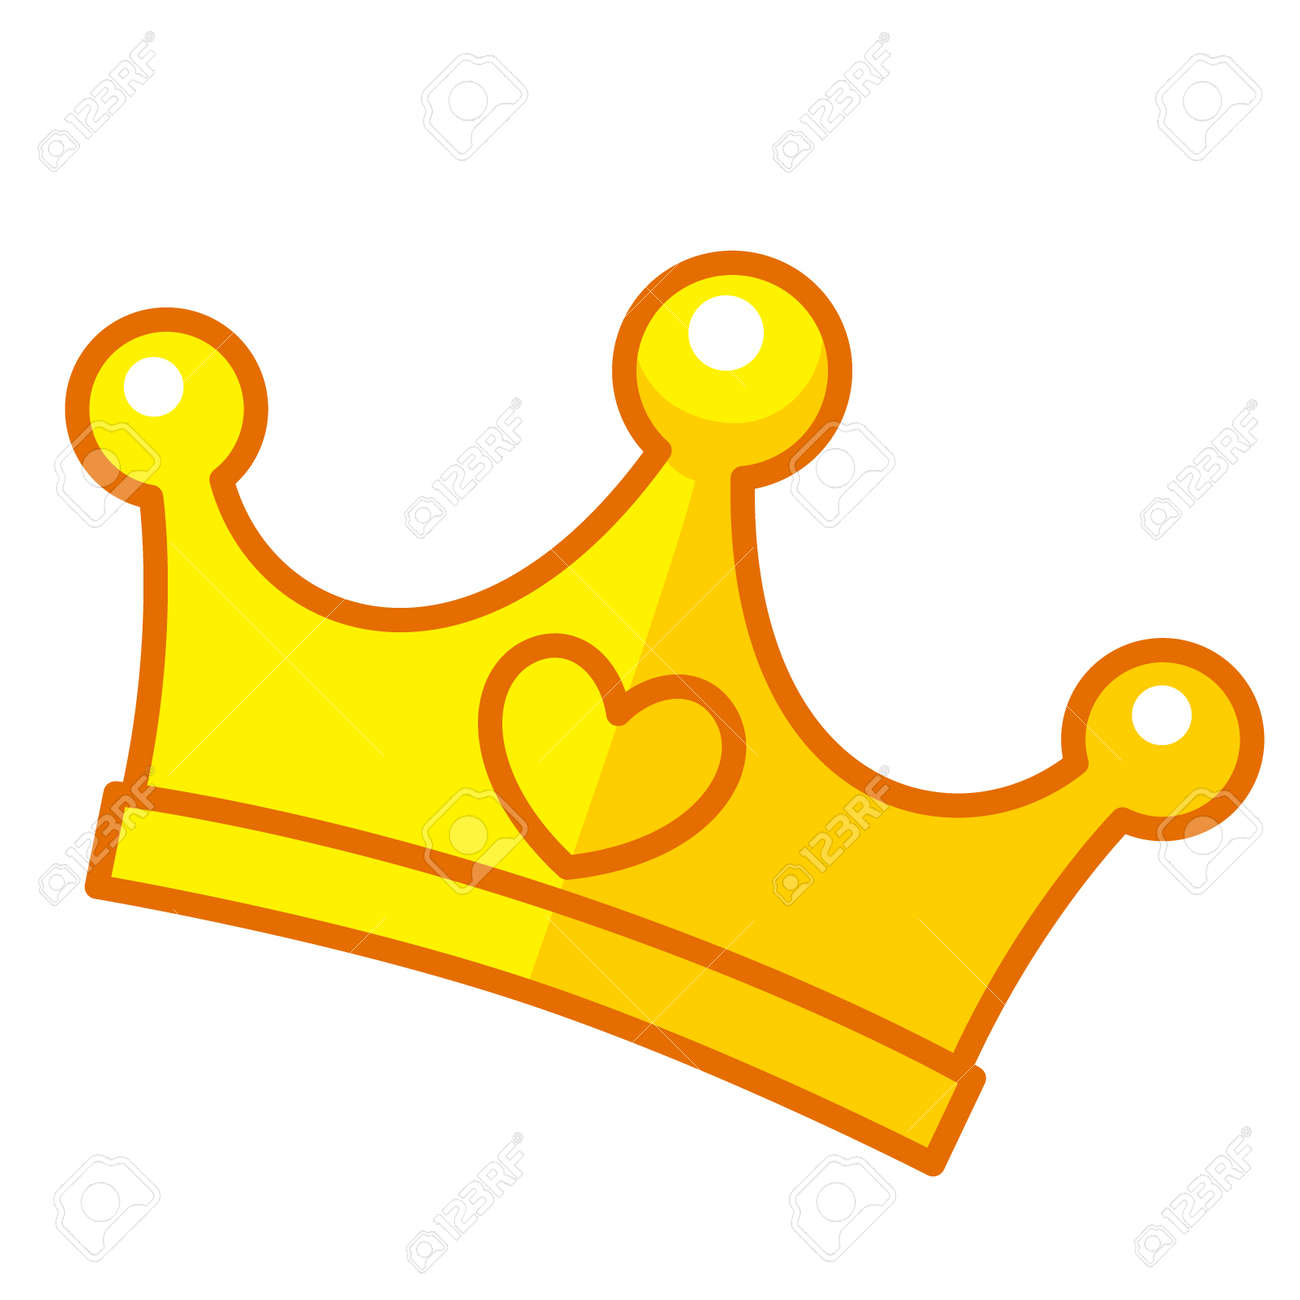 Cartoon Gold Crown Royalty Free Cliparts Vectors And Stock Illustration Image 95895239 Choose from 700+ cartoon crown graphic resources and download in the form of png, eps, ai or psd. cartoon gold crown